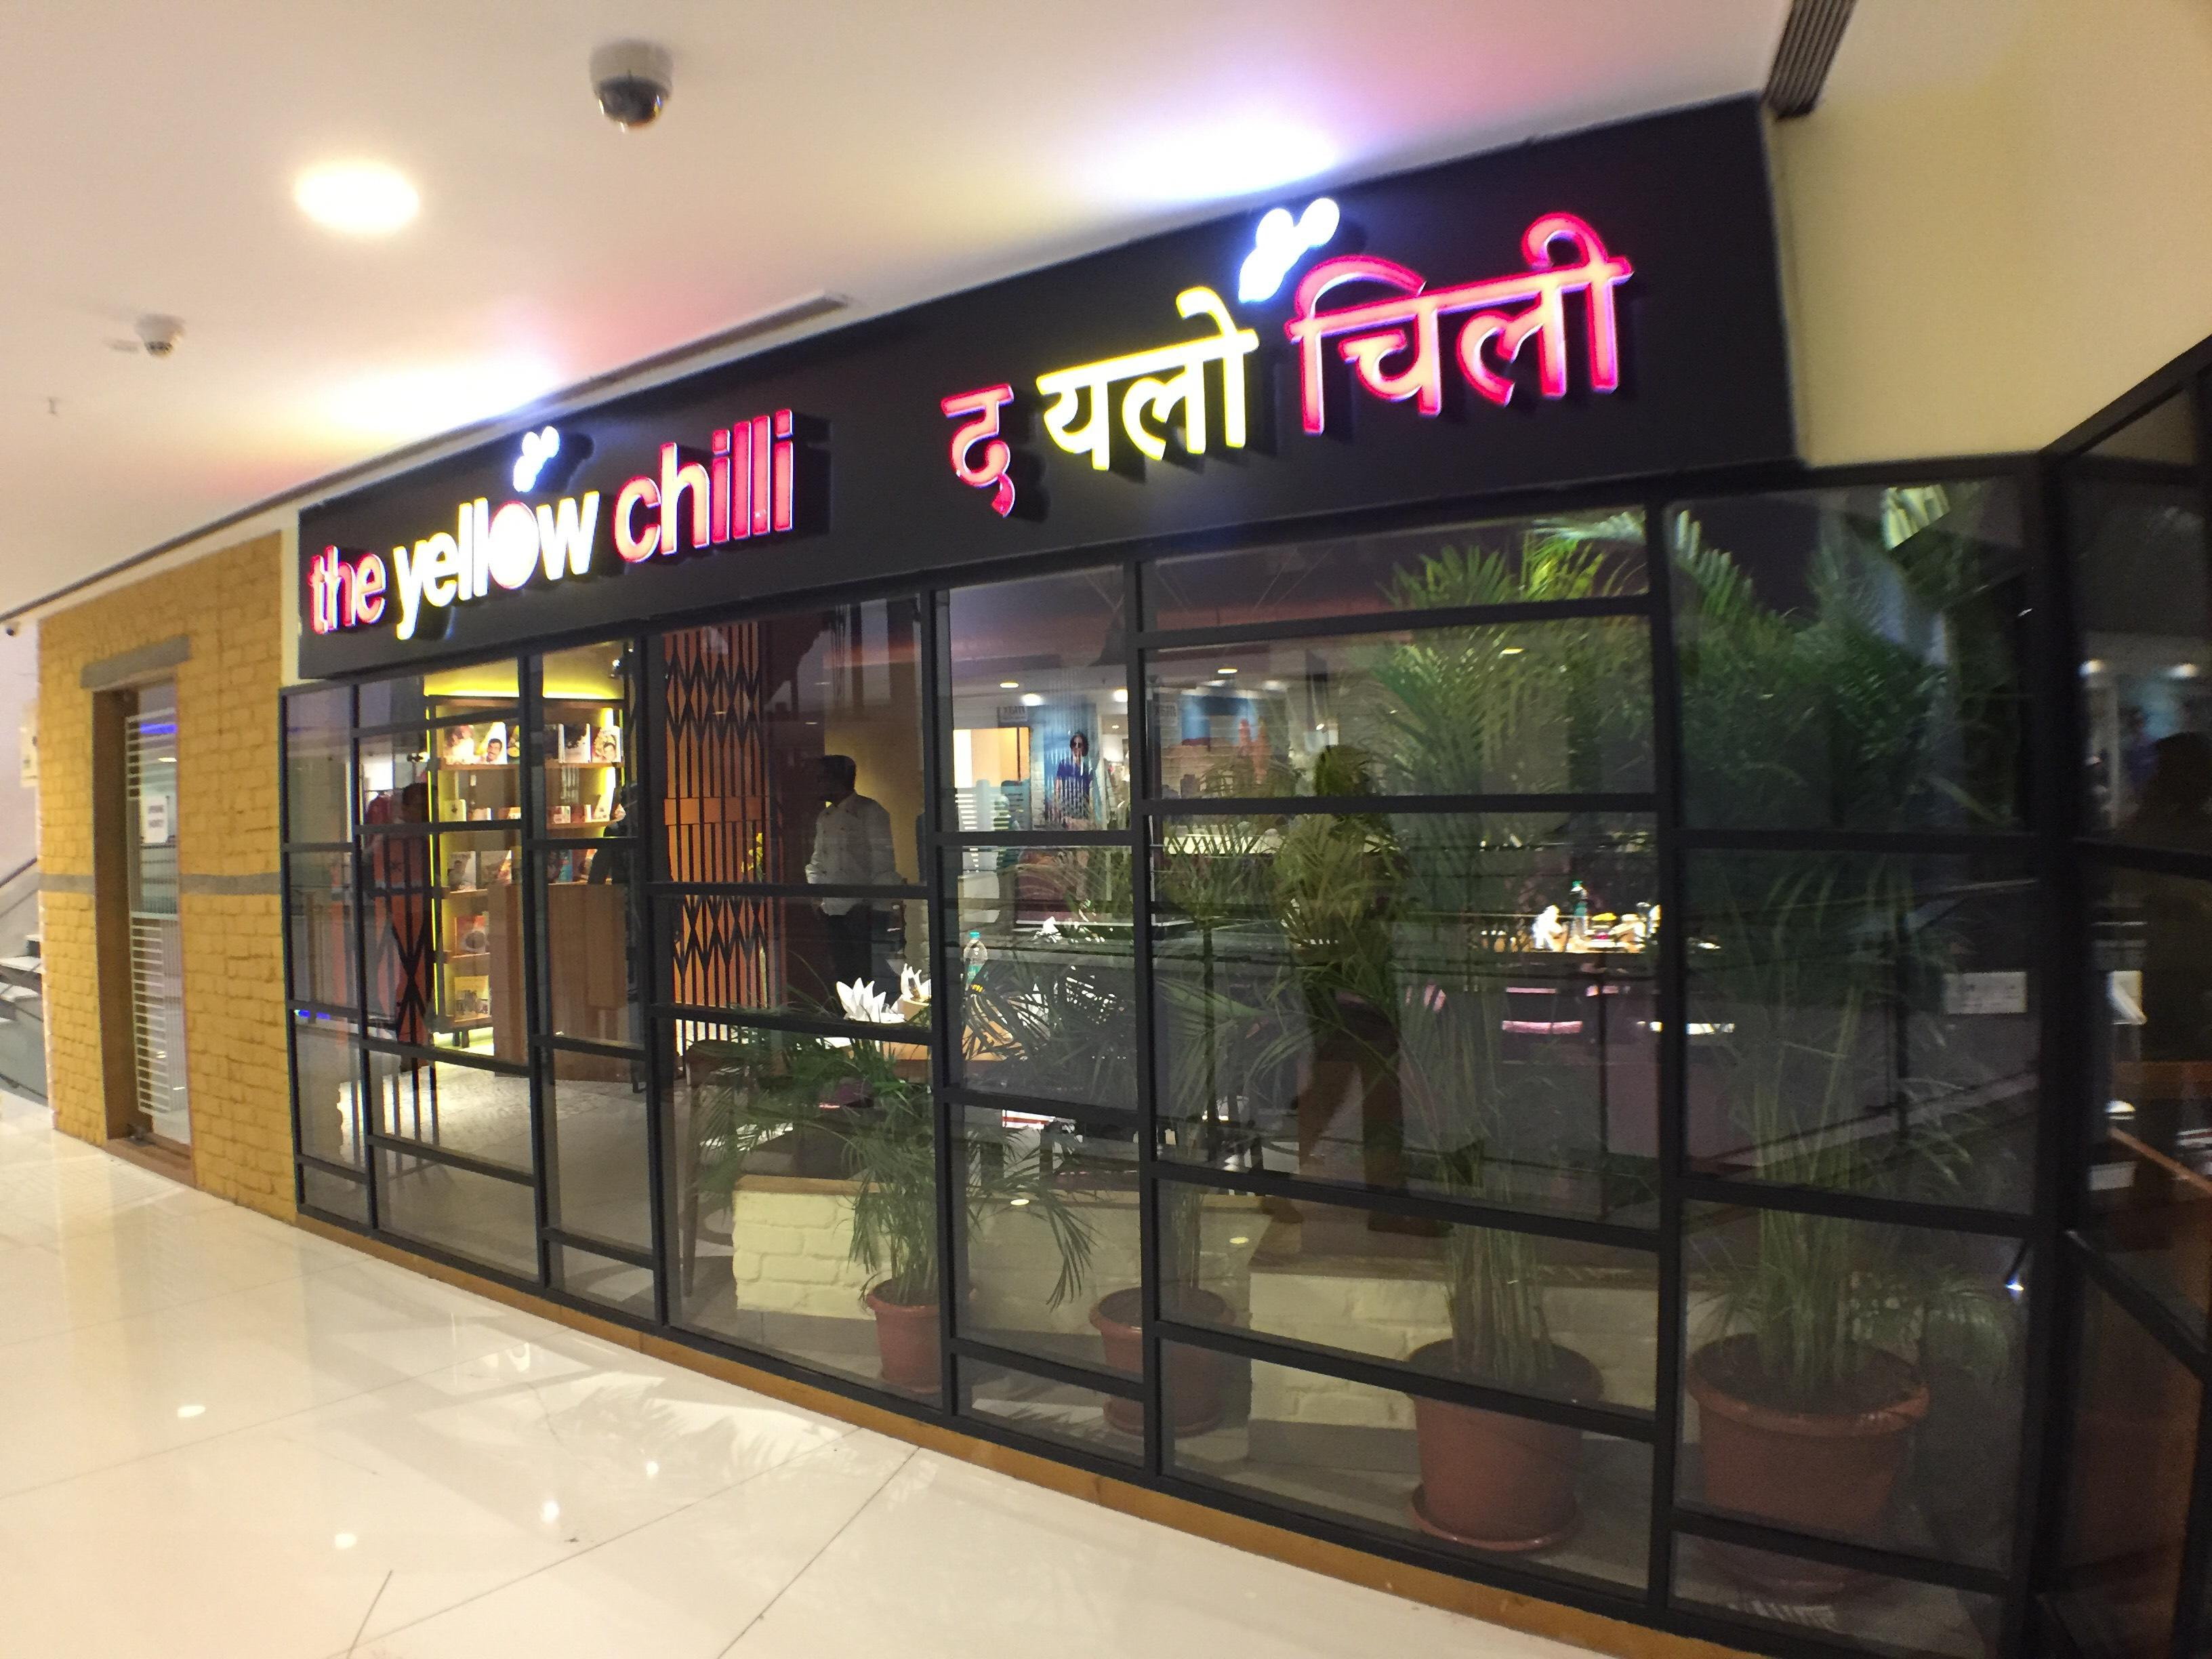 Redefining Indian Food with Sanjeev Kapoor's The Yellow Chilli